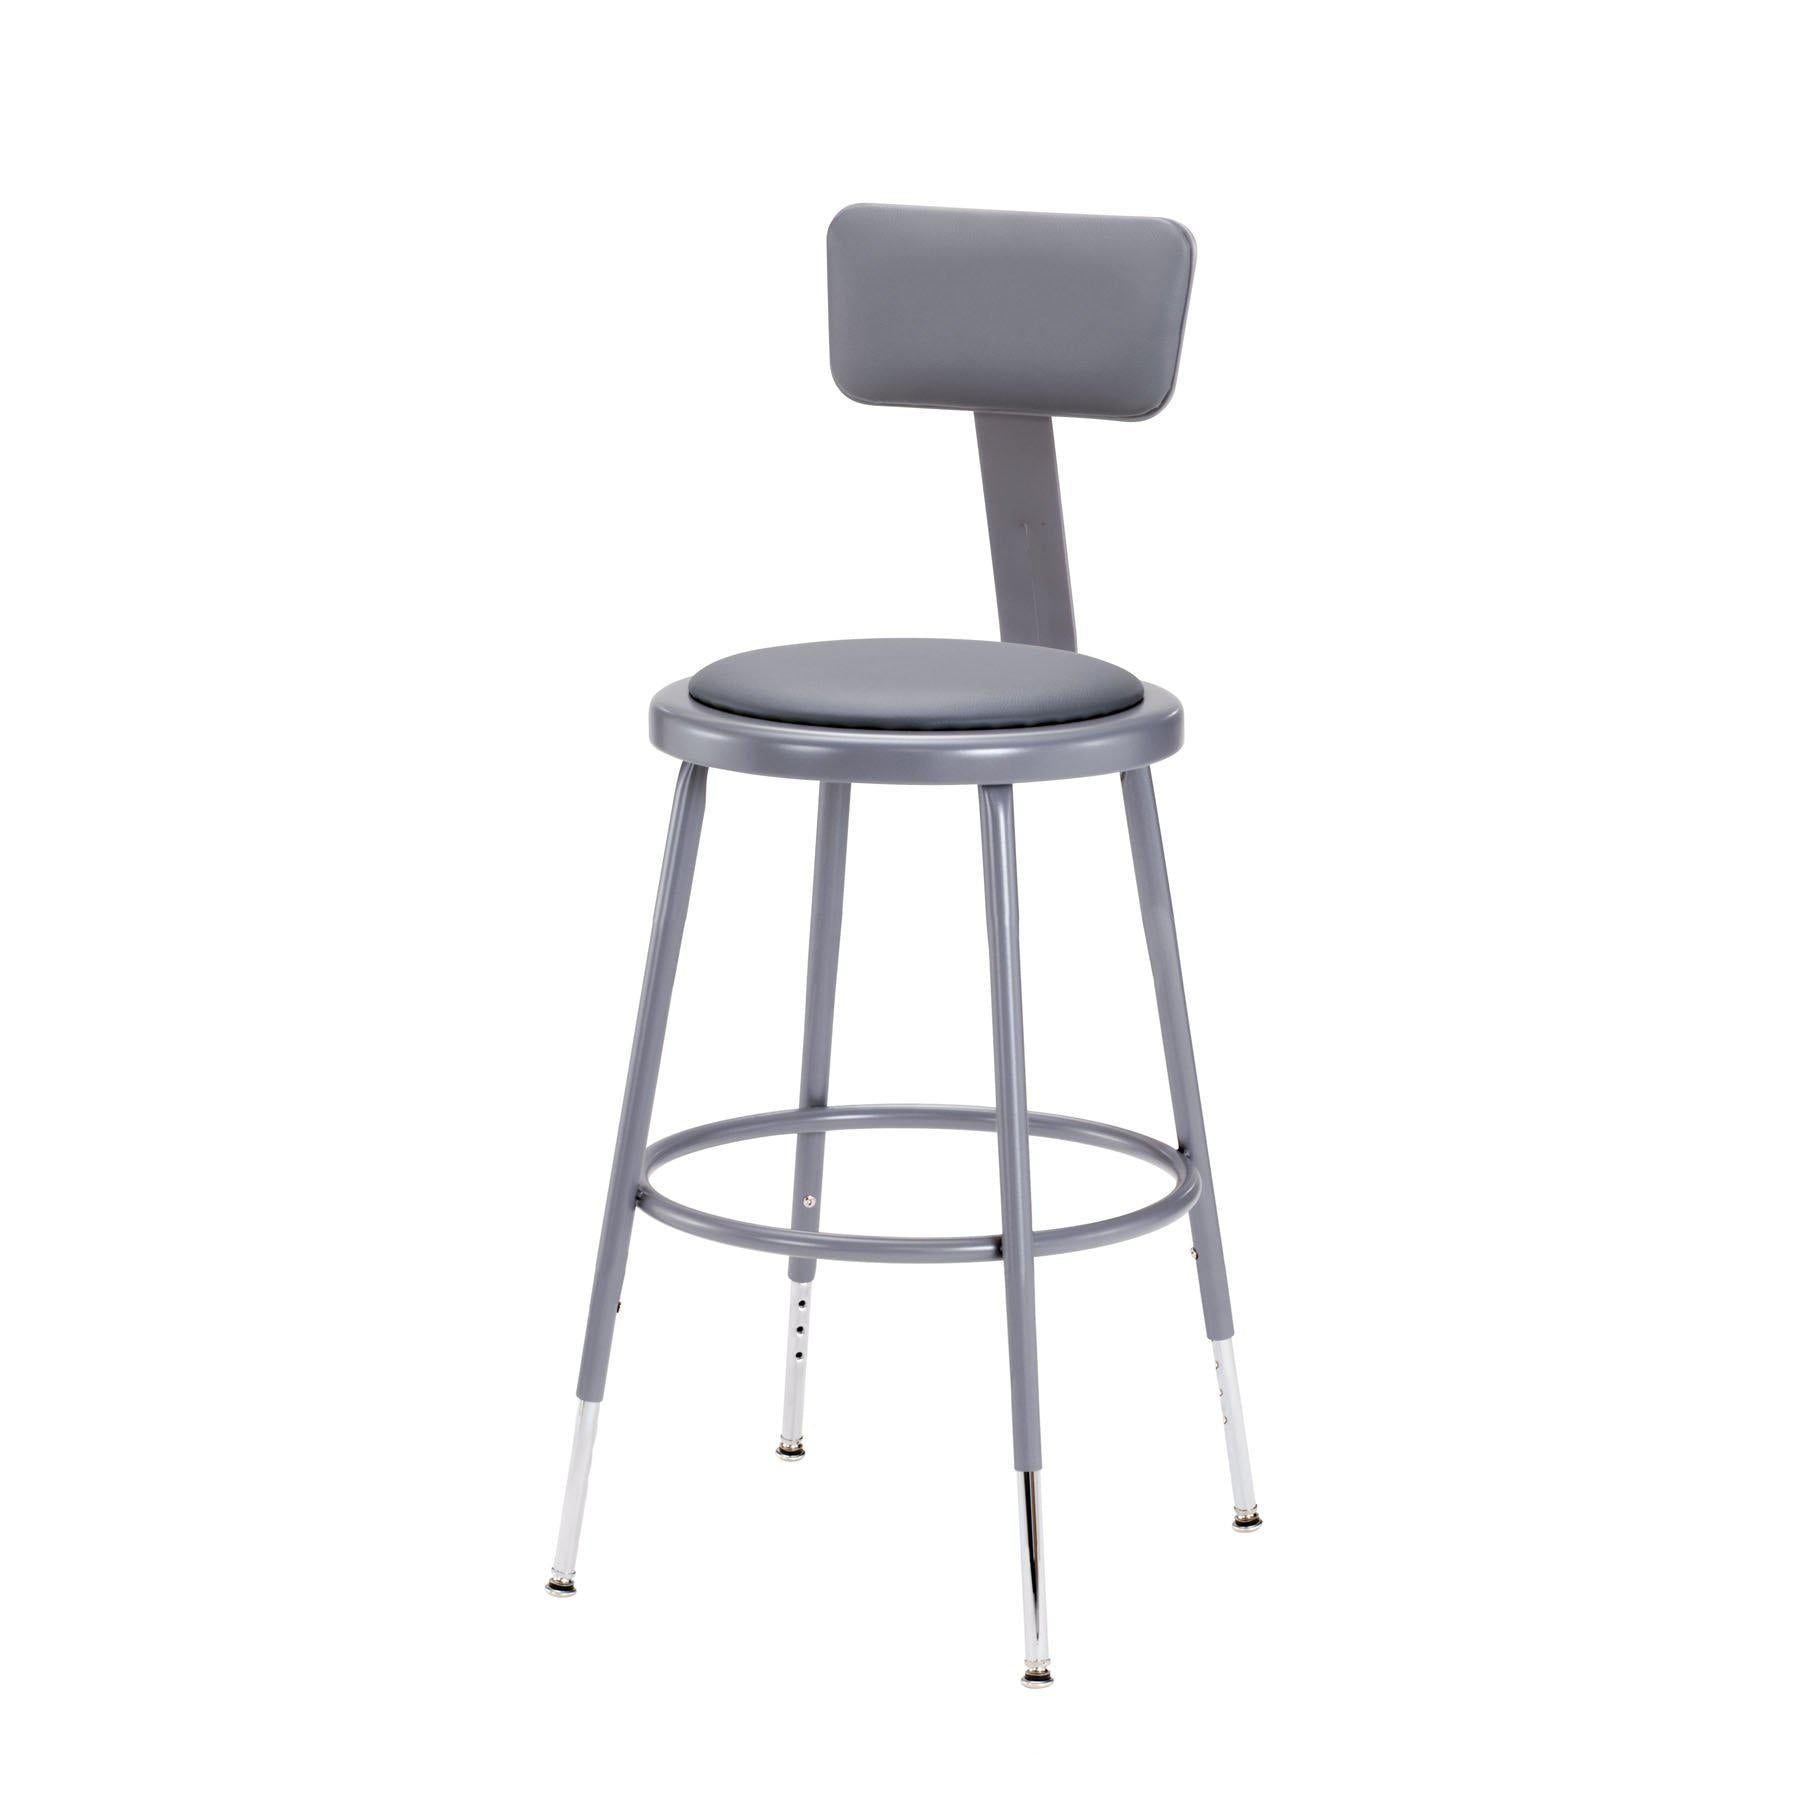 "Height Adjustable Heavy Duty Vinyl Padded Steel Stool With Backrest-Stools-Grey-19"" - 27""-"